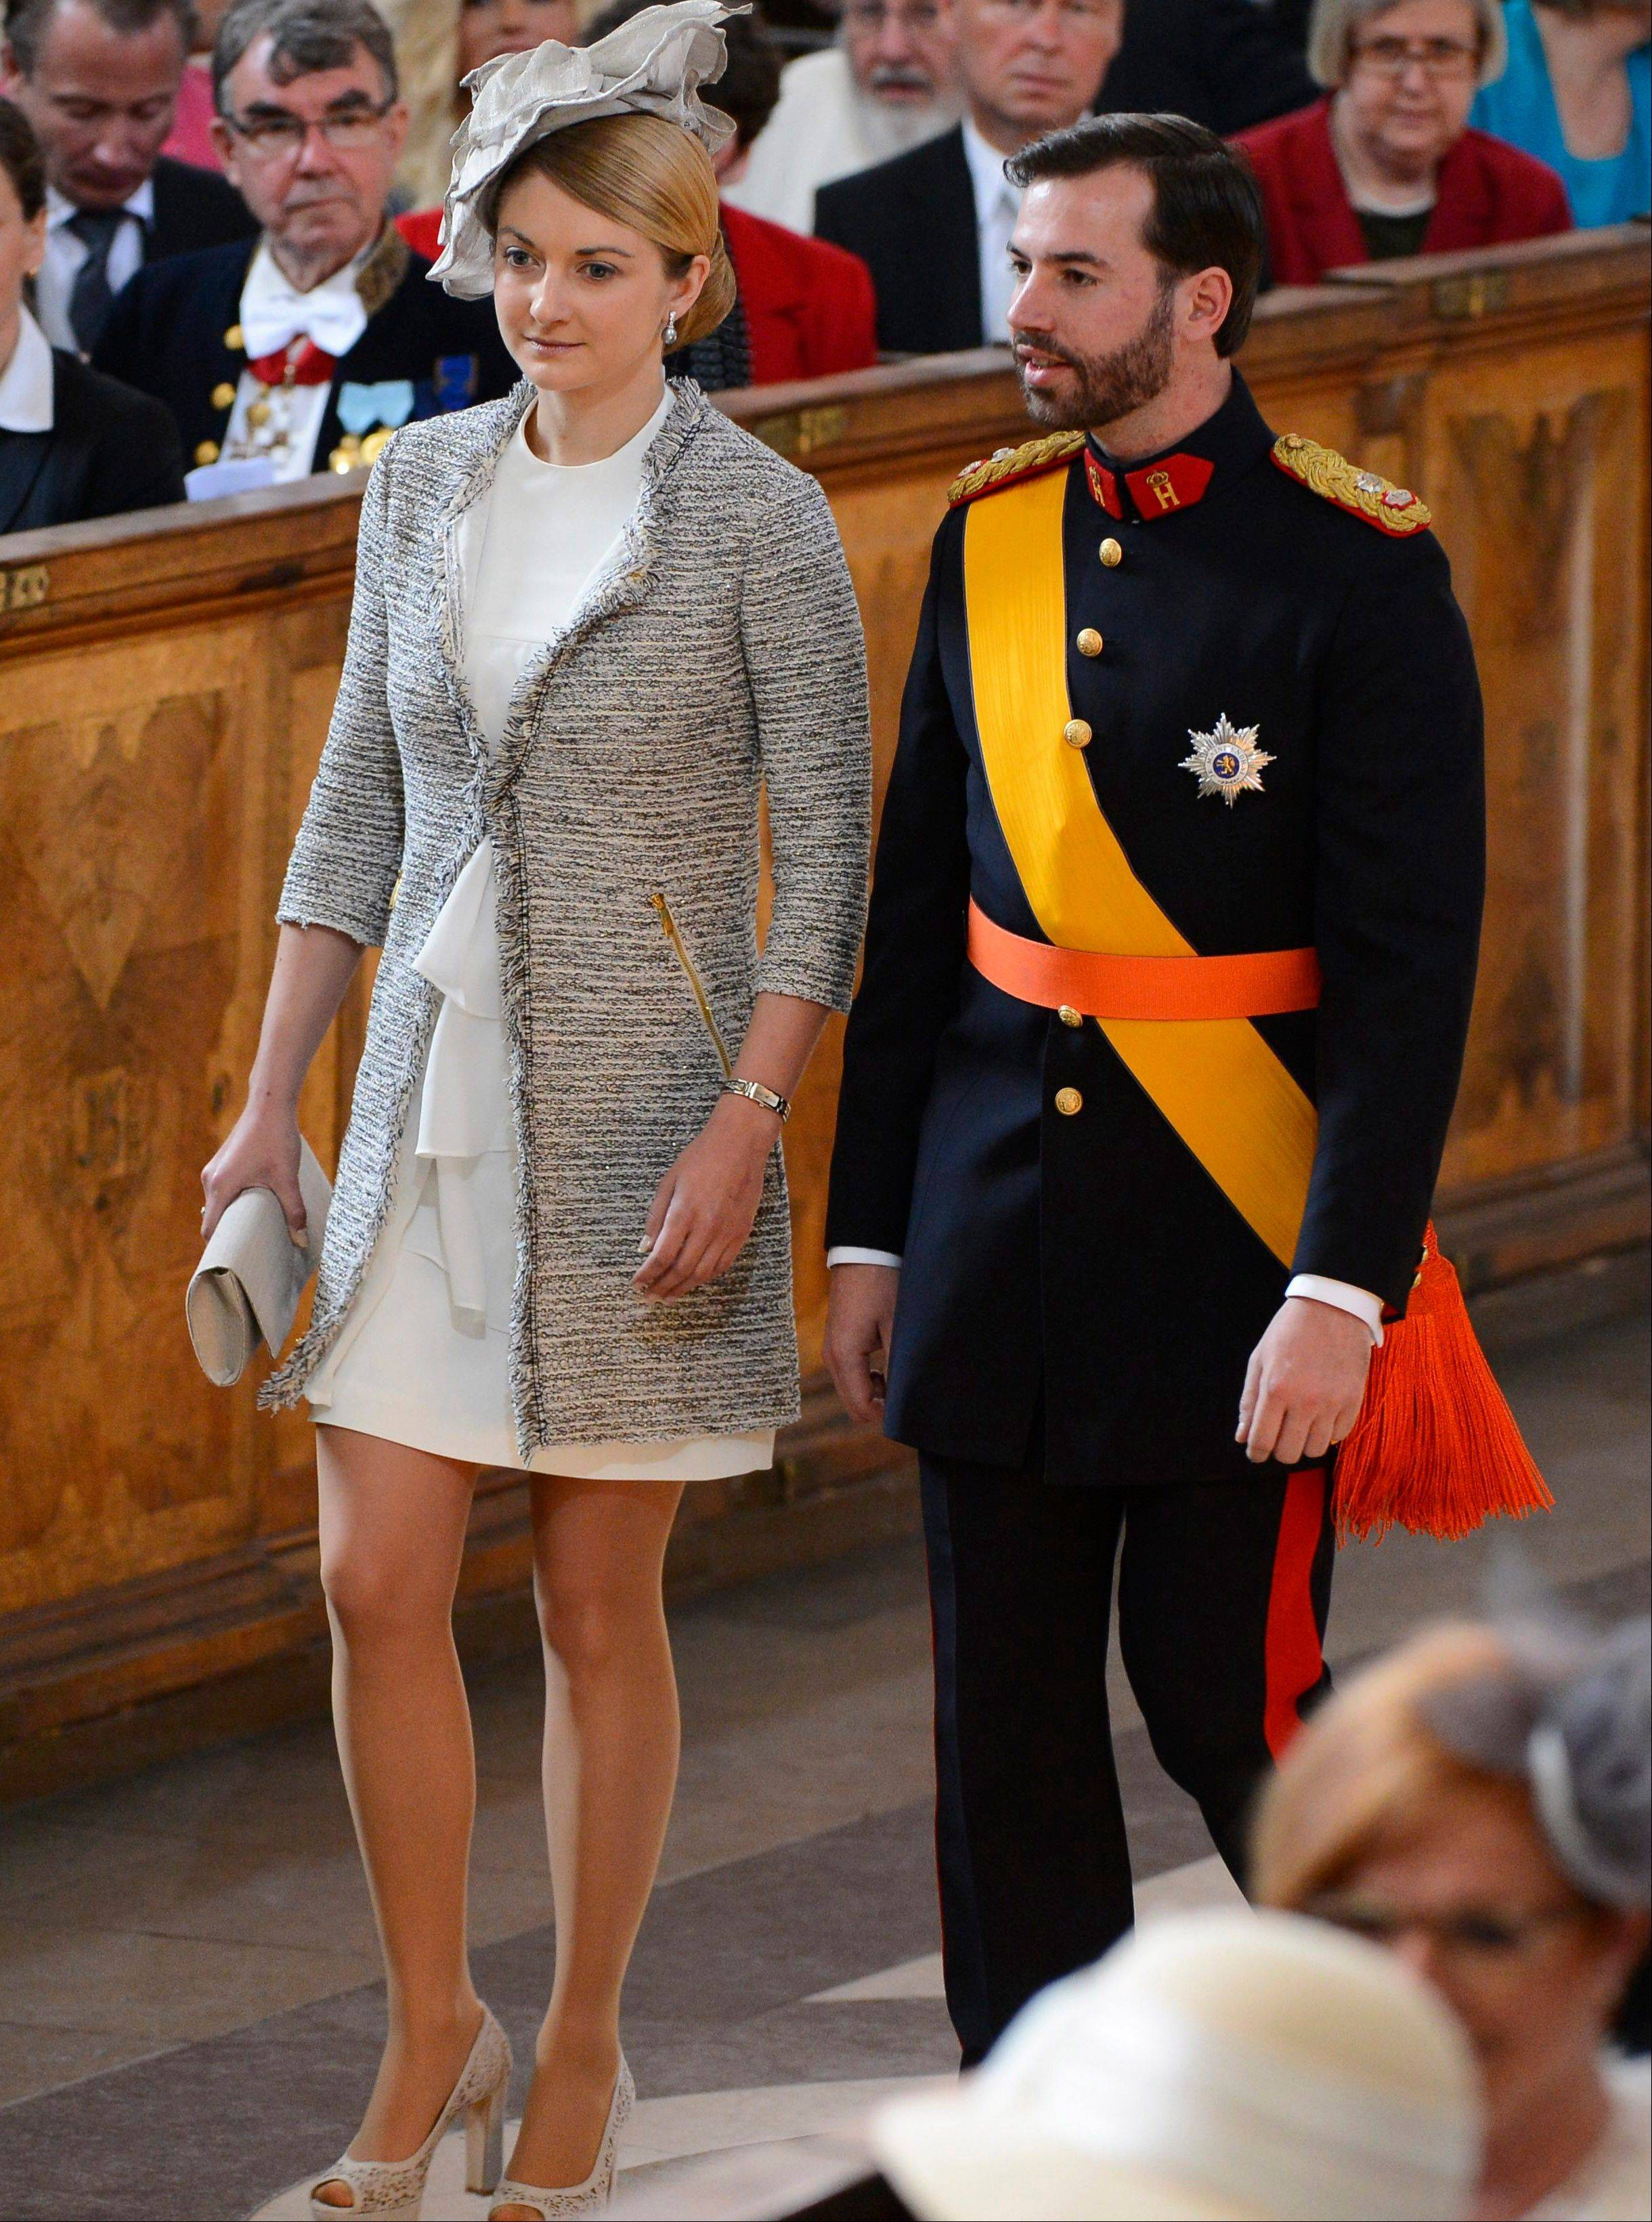 Prince Guillaume of Luxembourg, the heir to the throne, will marry Belgian Countess Stephanie de Lannoy during a two-day affair, including fireworks, concerts, a gala dinner at the grand ducal palace.